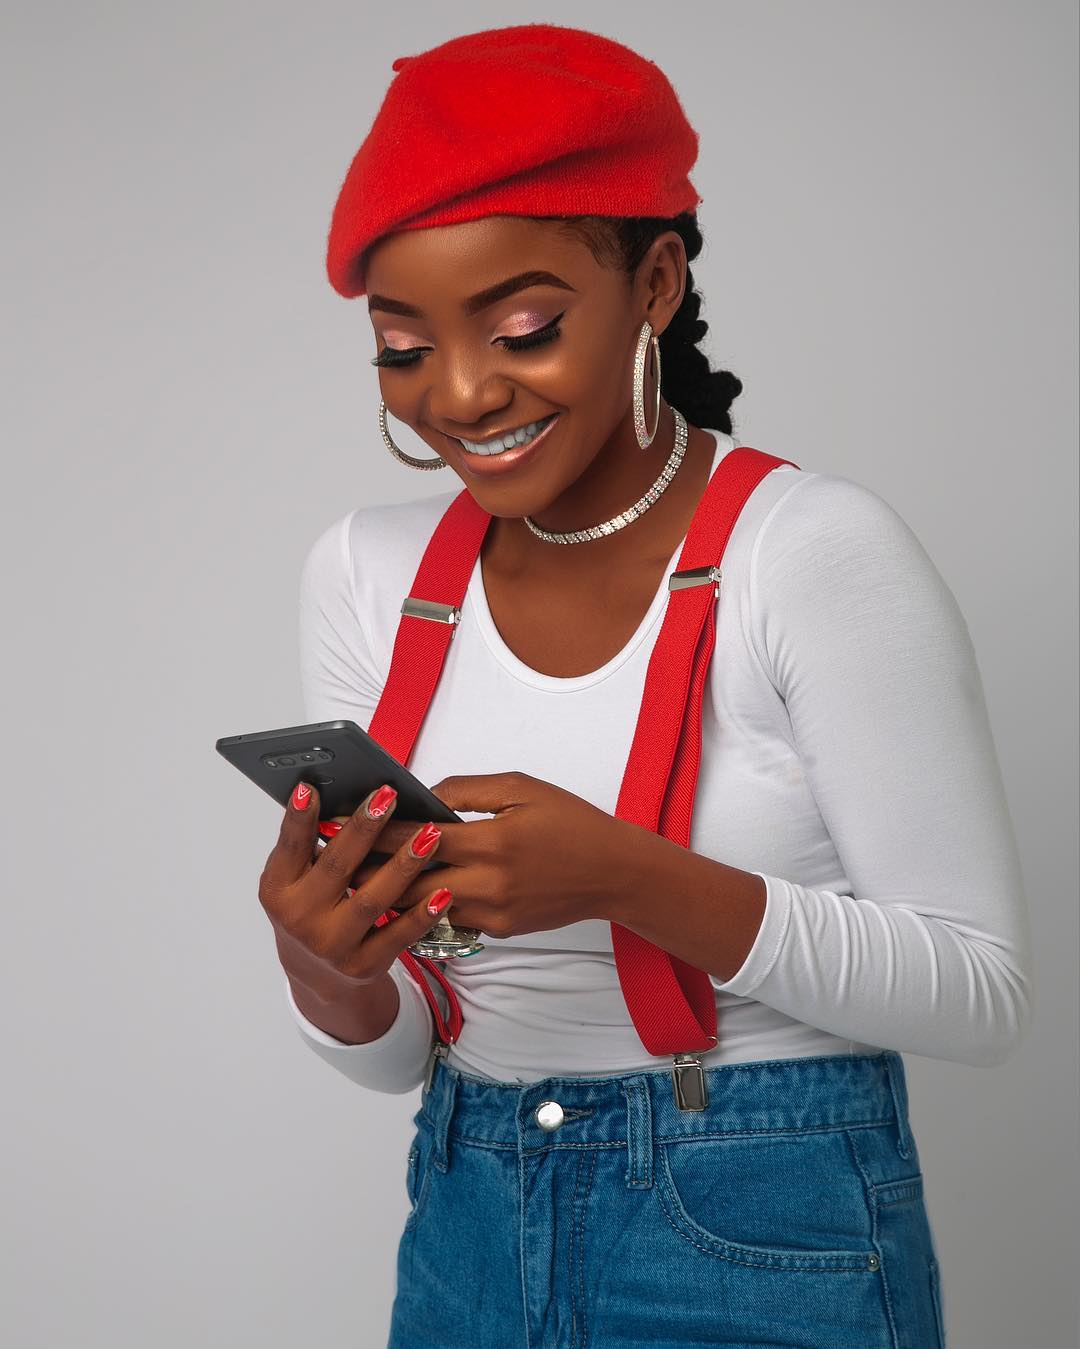 Photo of Simi Bags Endorsement Deal With Opera Mini